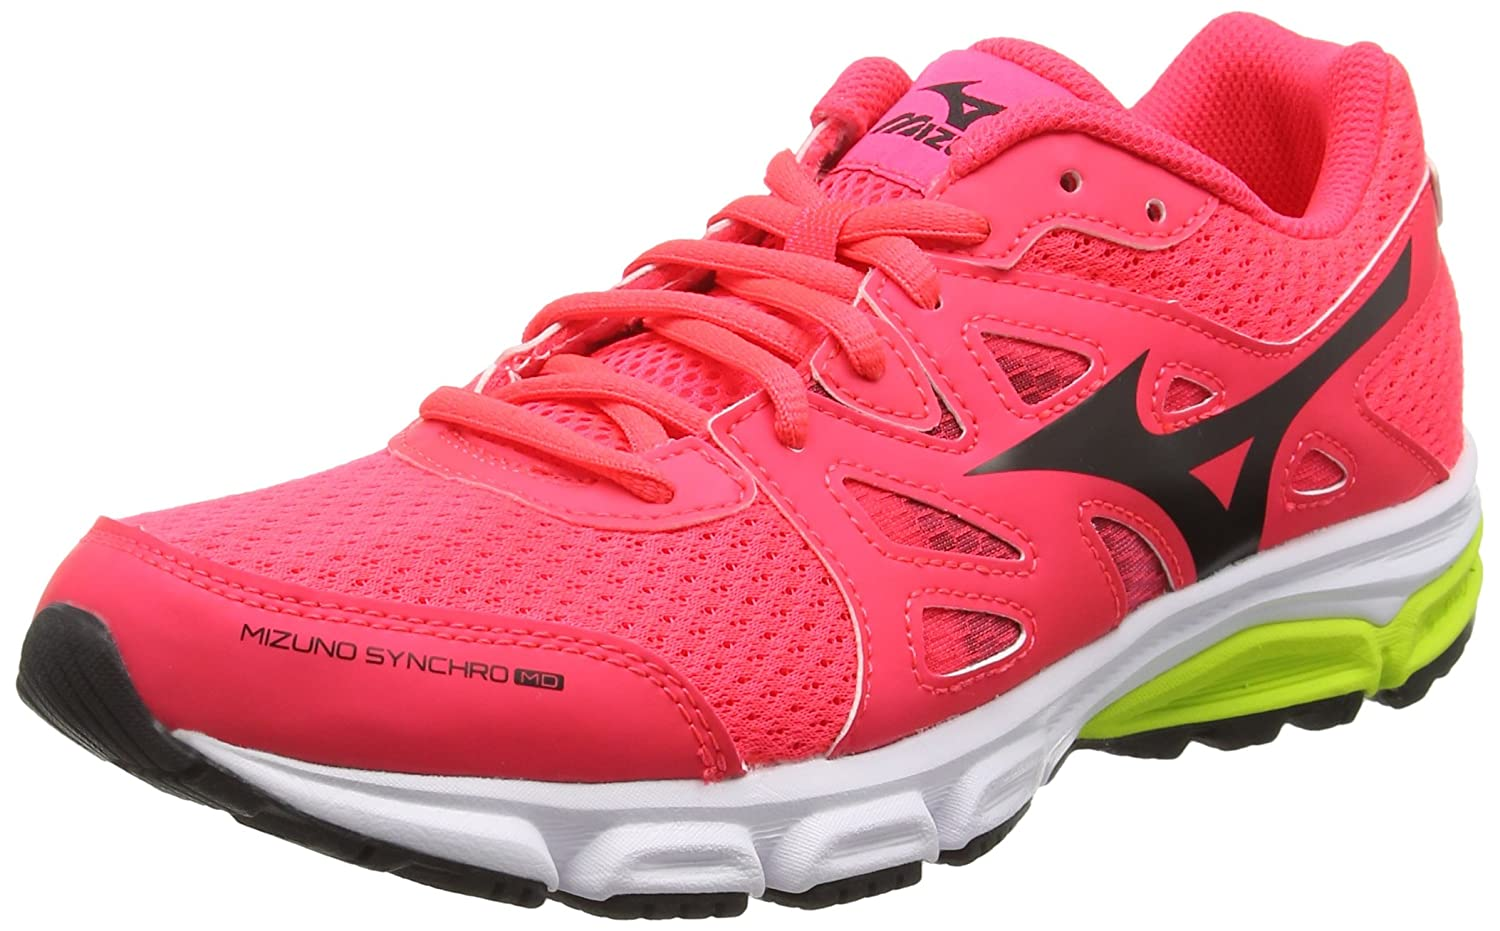 newest 3a5c5 79bf4 Mizuno Synchro MD, Chaussures de Running Compétition Femme  Amazon.fr   Chaussures et Sacs